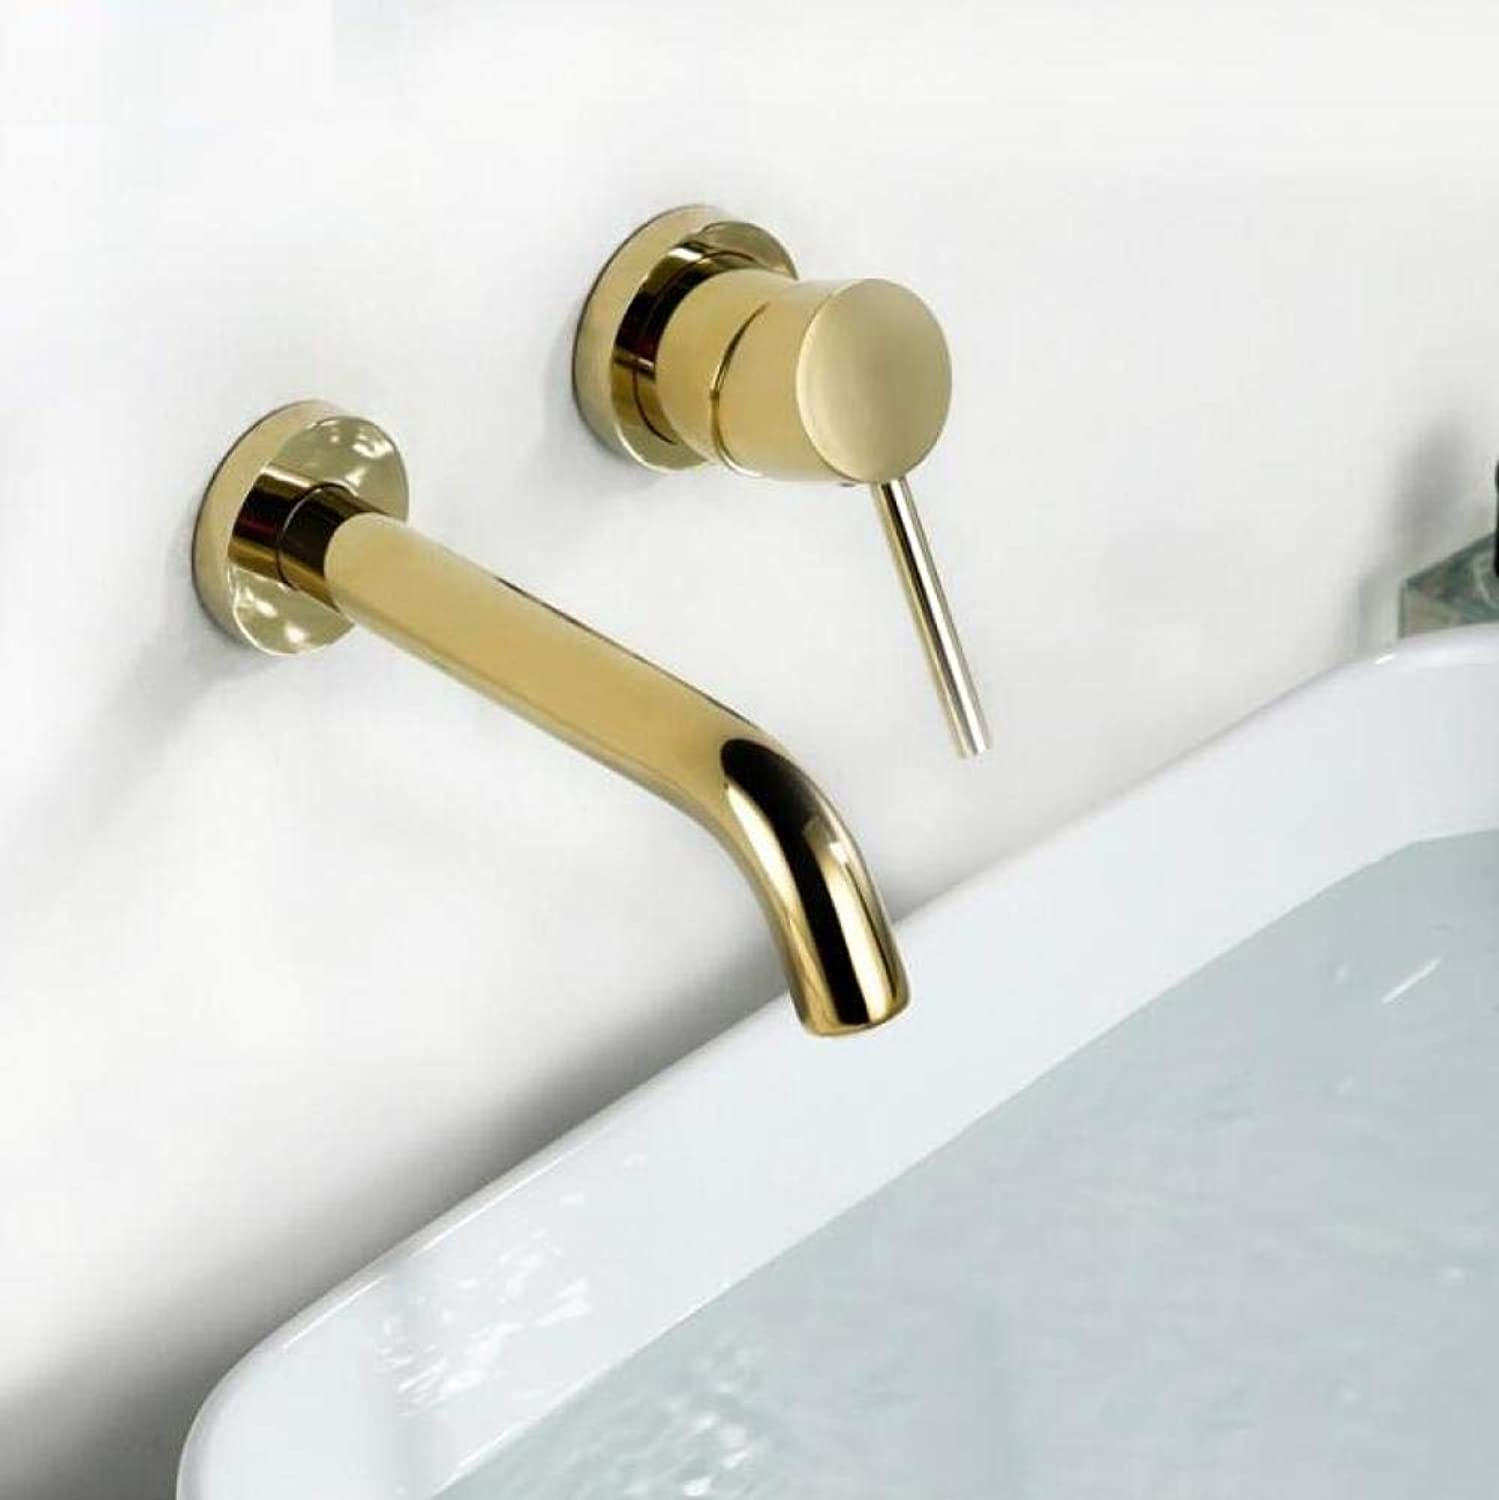 Wasserhahn Küchenarmatur Gold Farbe Simple Wall Mounted Bathroom Faucet 100% Solid Brass Single Handle Basin Water Mixer Faucet Golden Tap Ware